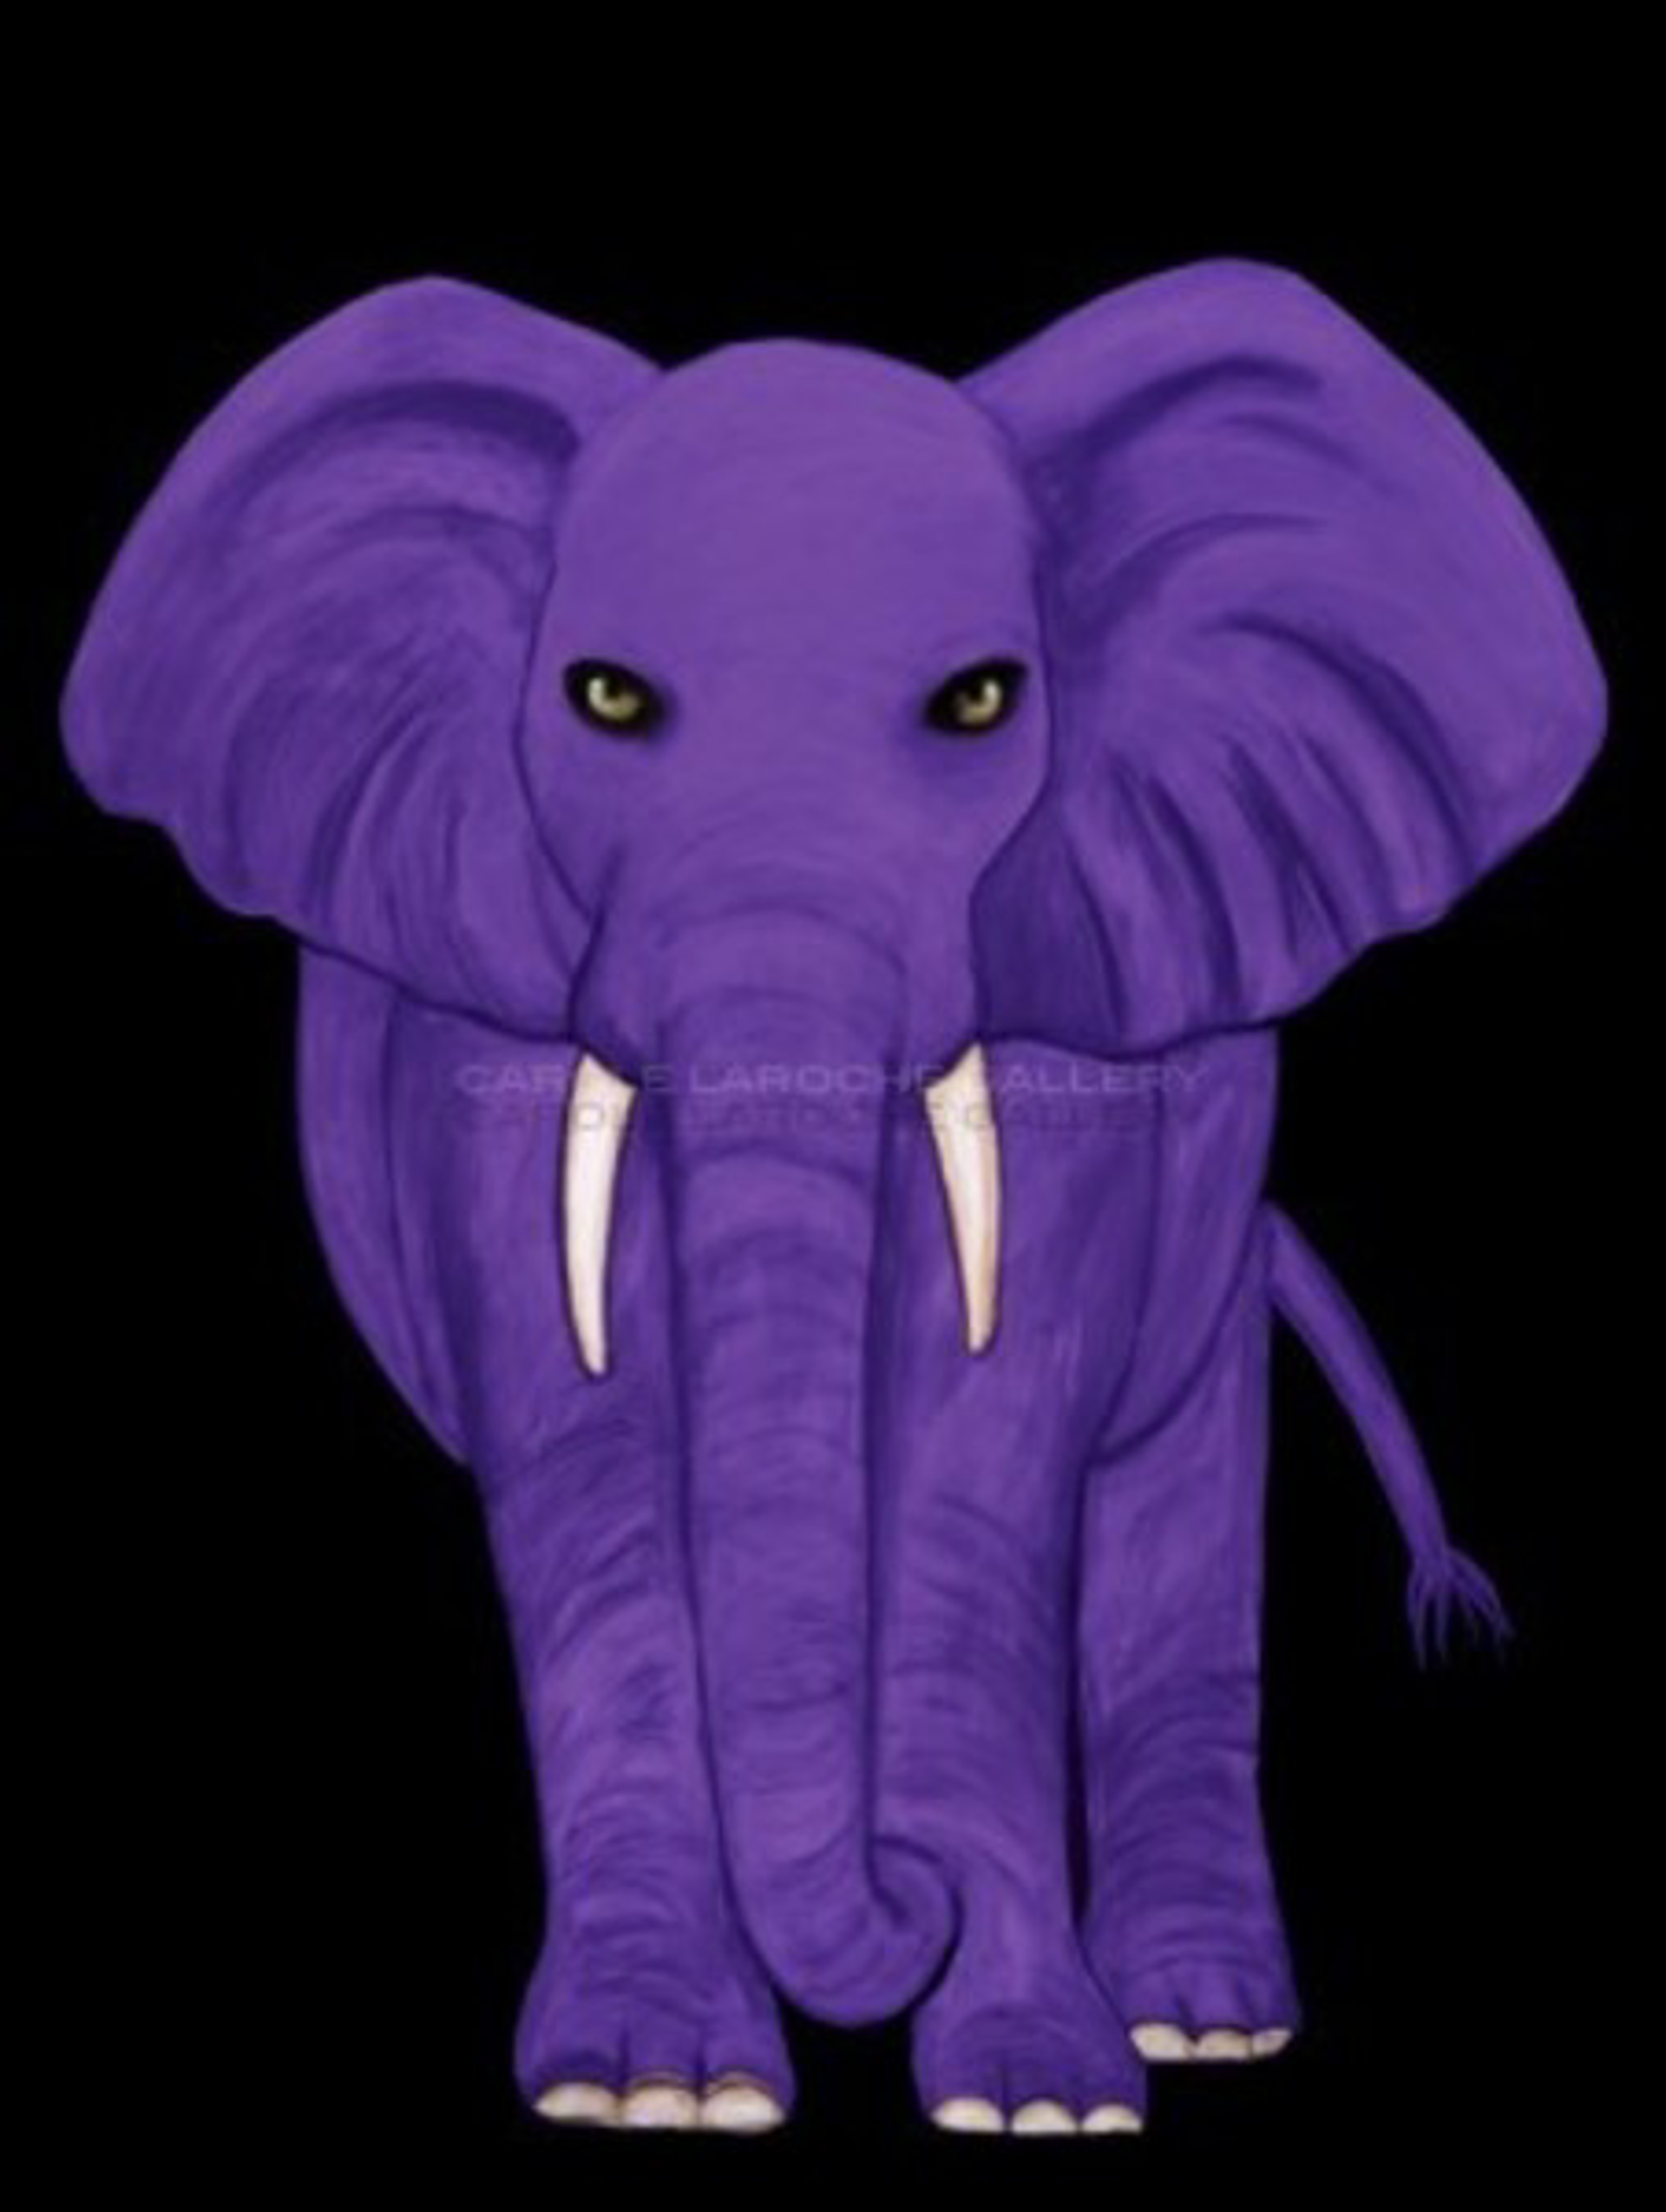 "PURPLE ELEPHANT - limited edition giclee on canvas 54""x40"" by Carole LaRoche"